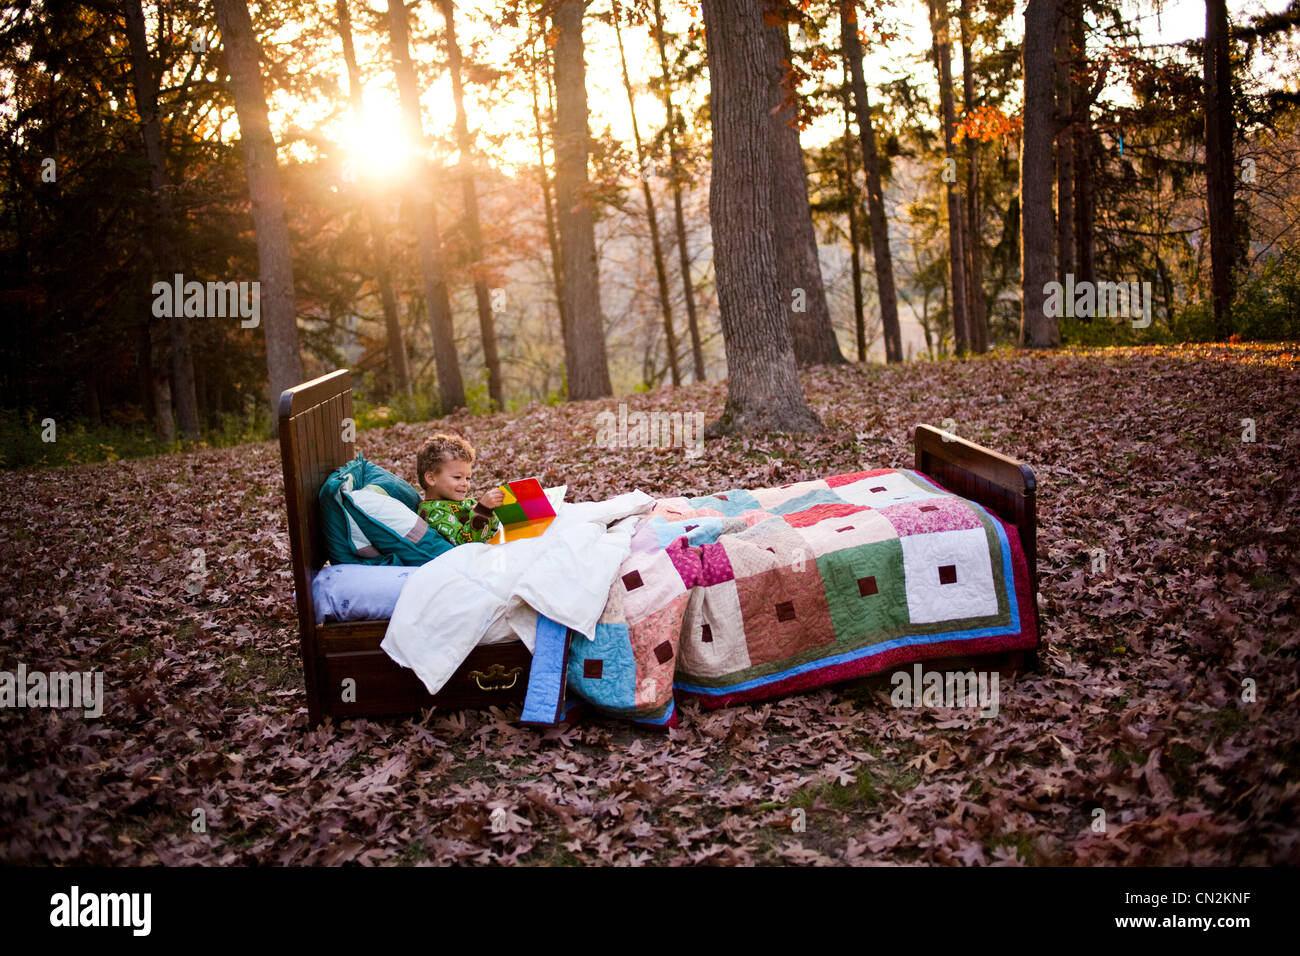 Young boy in bed in forest - Stock Image